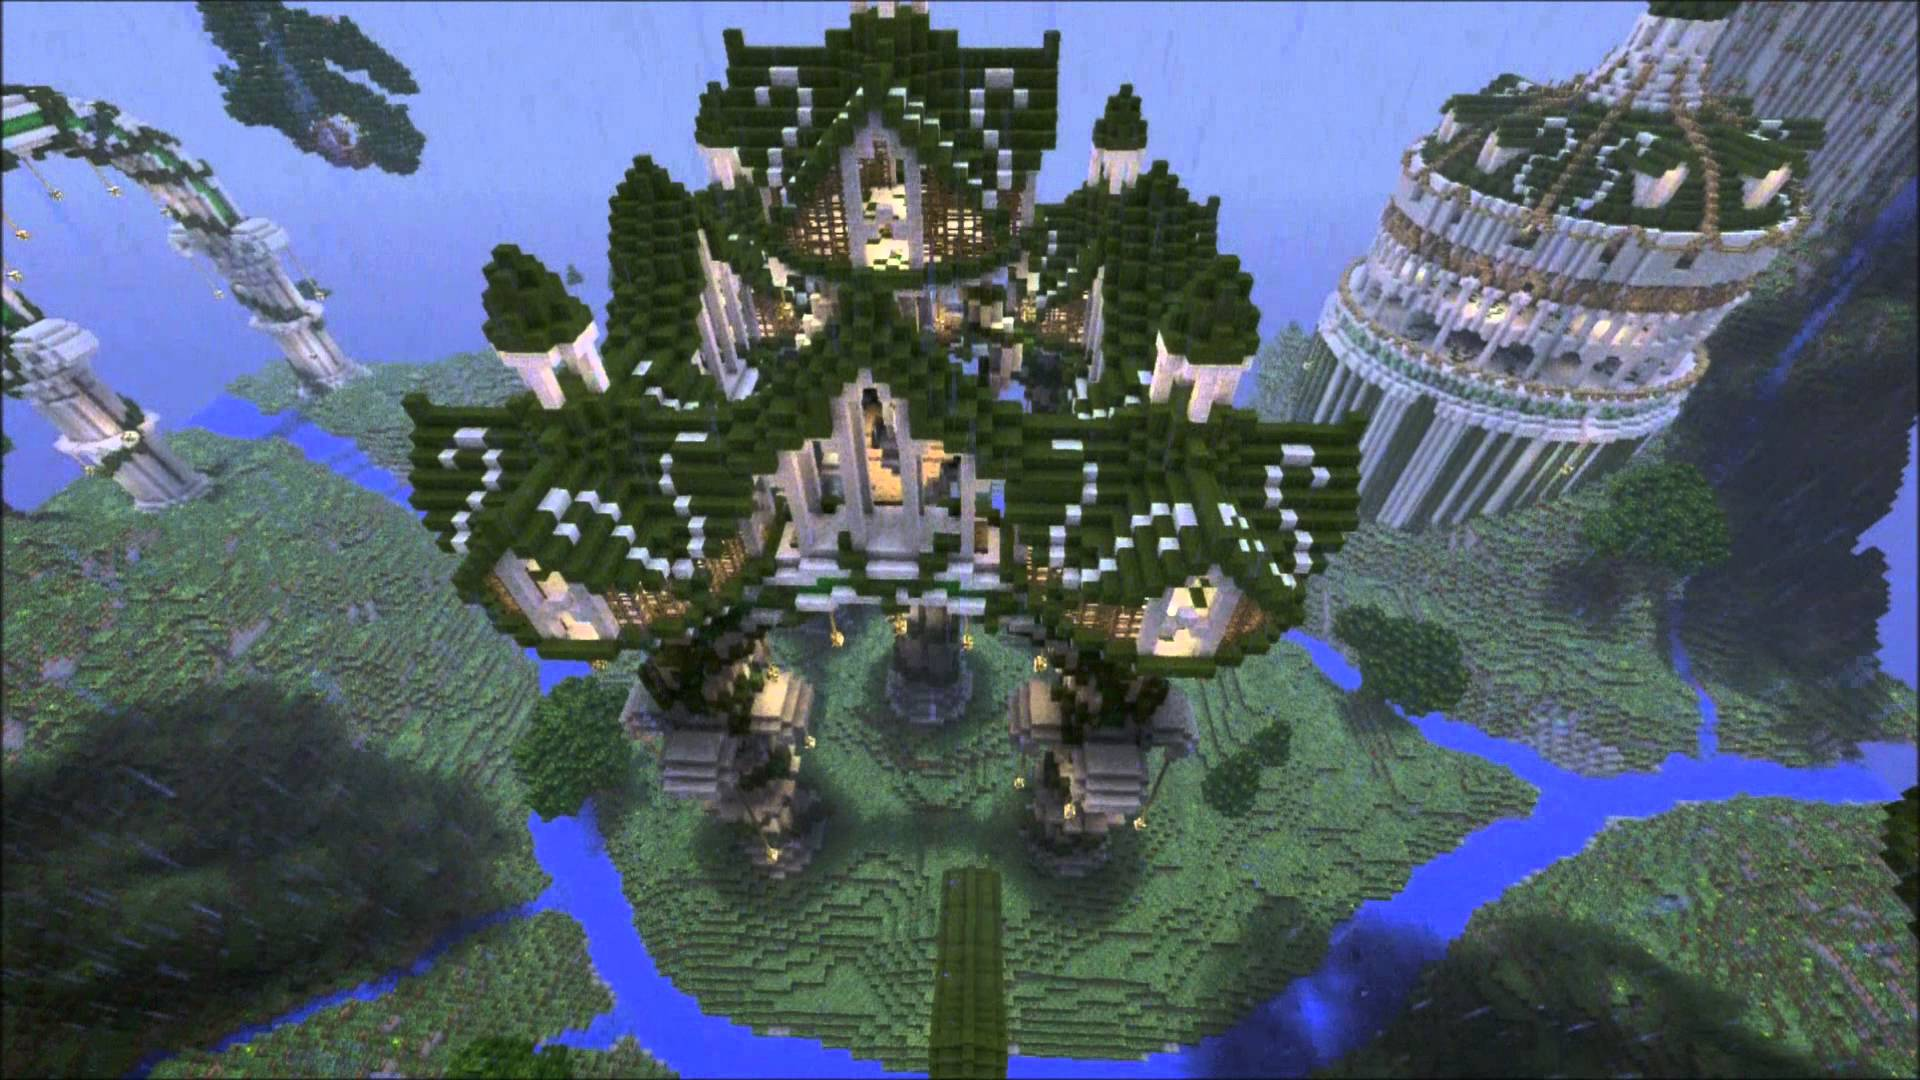 Aandovale Grove -PC Converted Map- (Minecraft PS3 PS4 Map ... on download for xbox 360, download for ipad, download for facebook, download for laptop, download web, download for iphone, download for windows, download for psp, download for apple, download ipod, download mac, download usb, download for desktop, download ps2, download playstation,